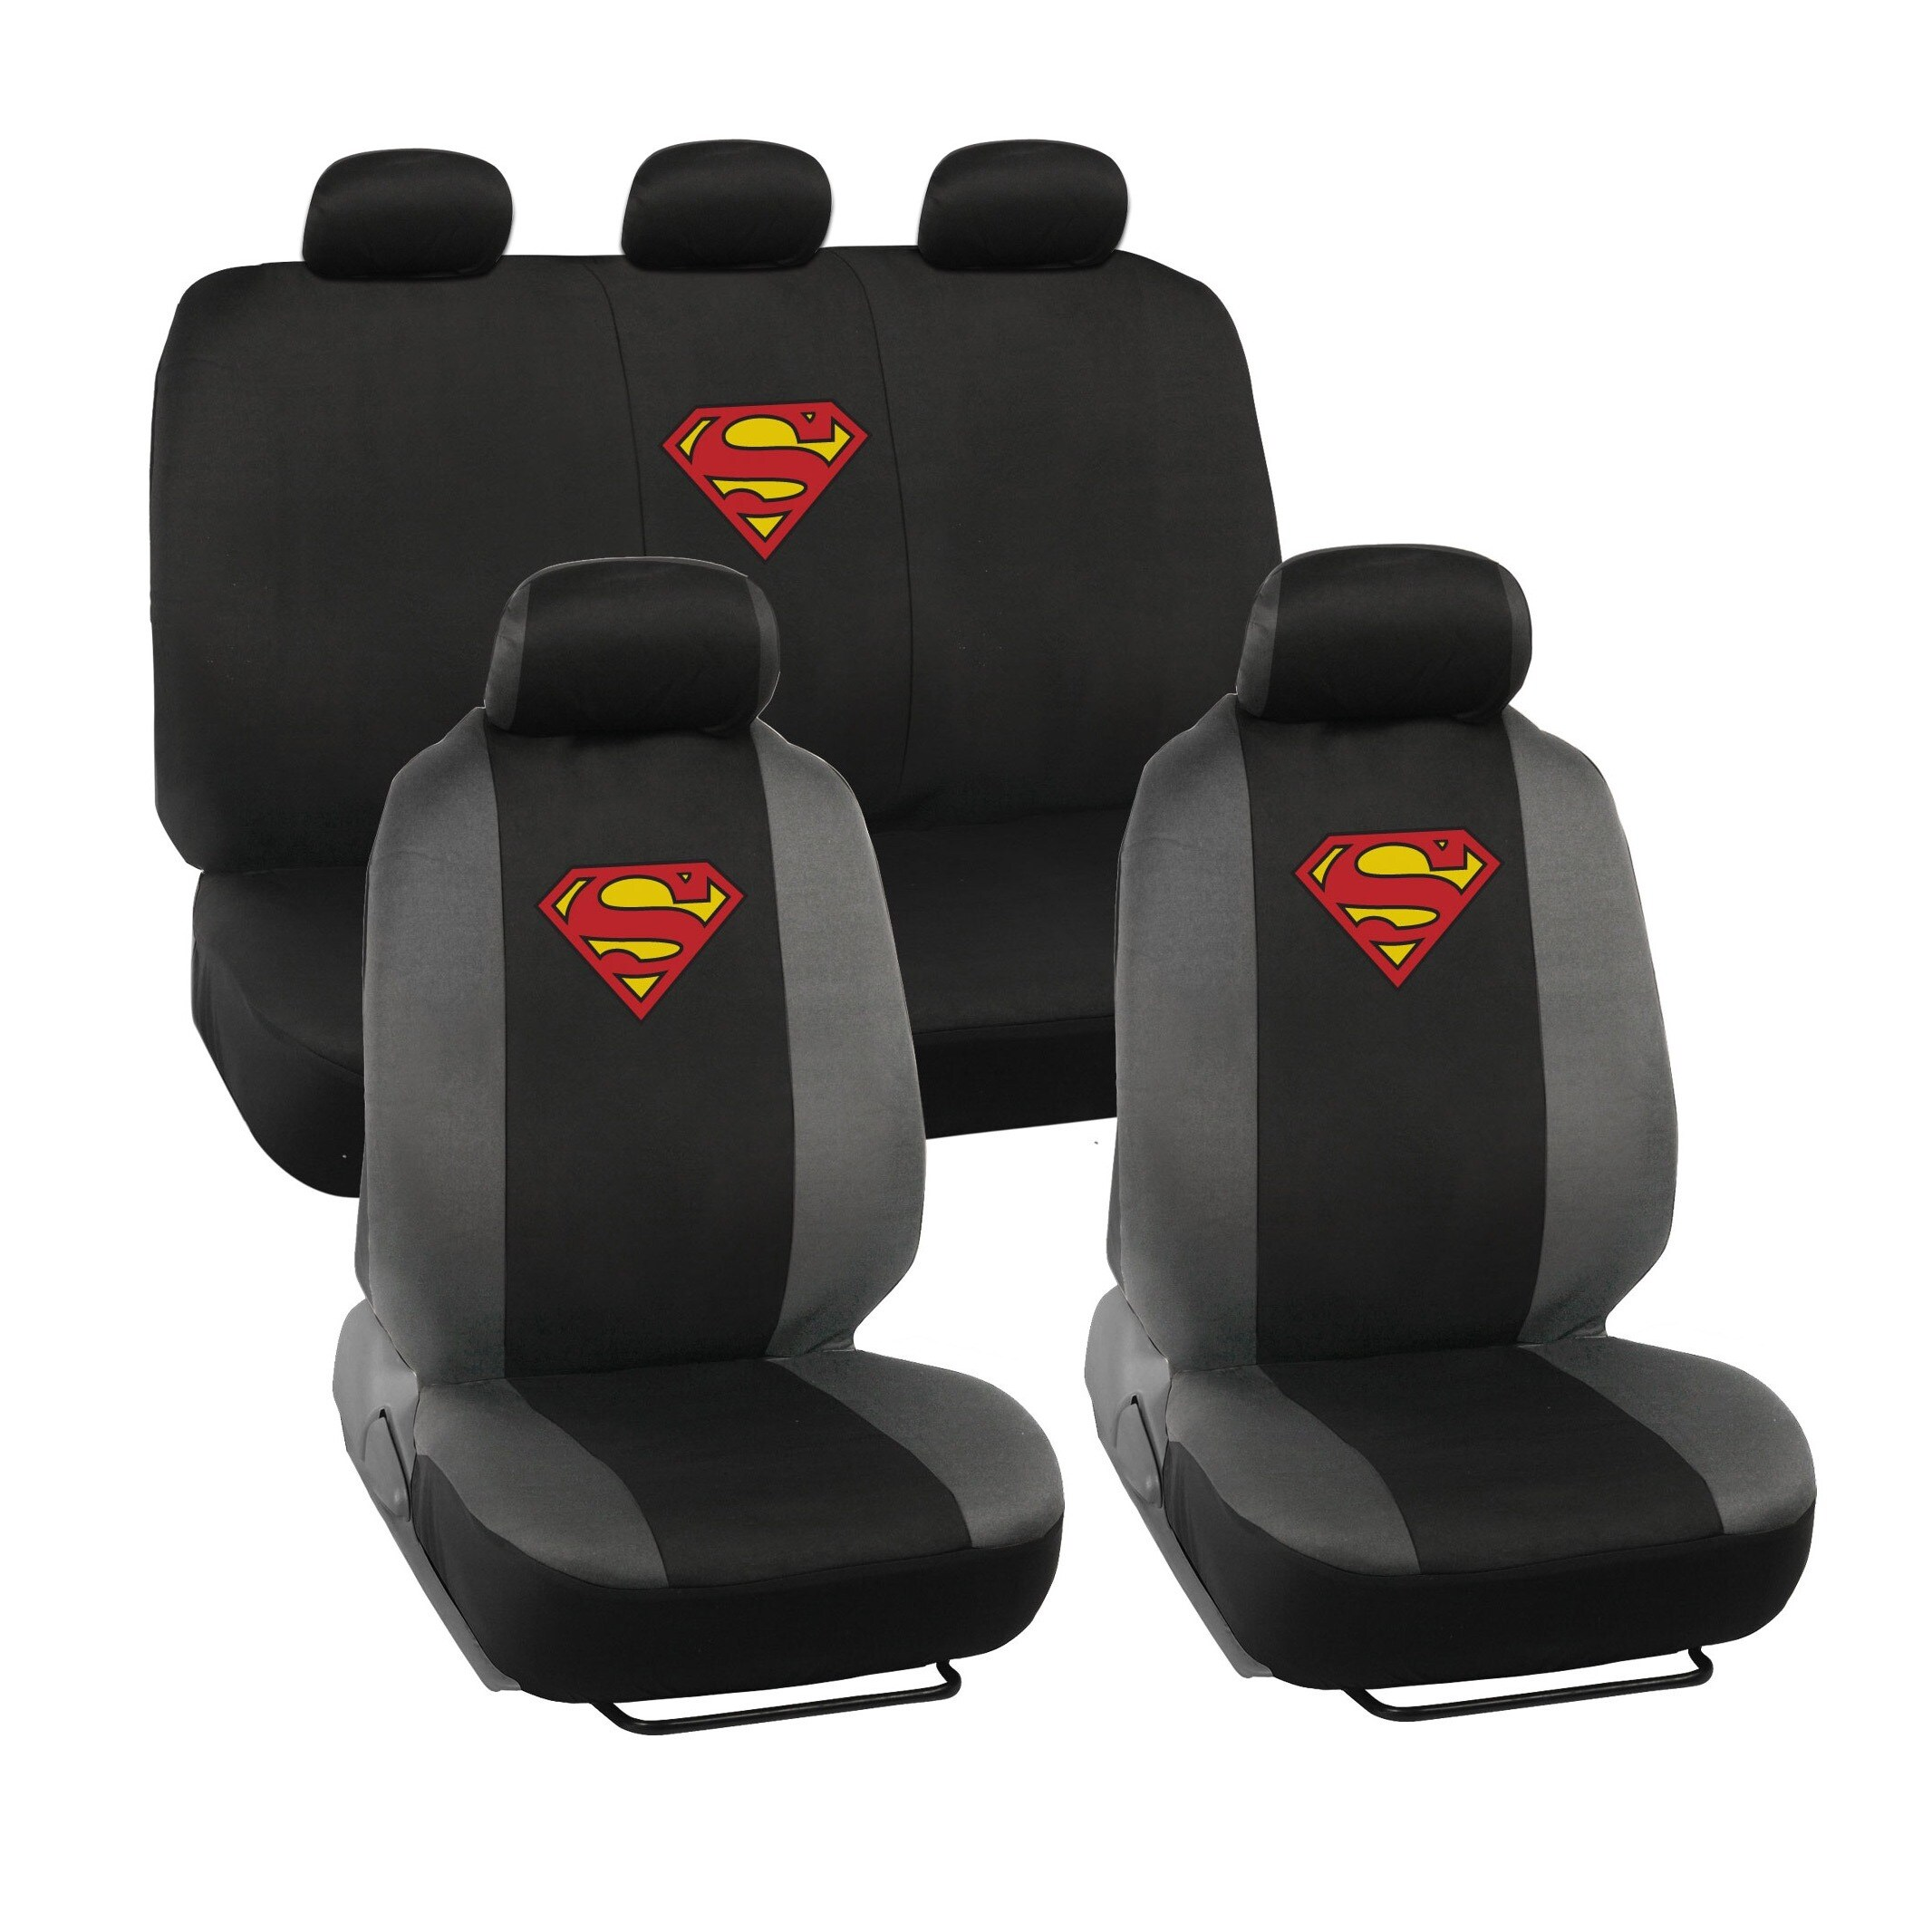 Warner Brothers Universal Fit Superman Seat Covers Access...